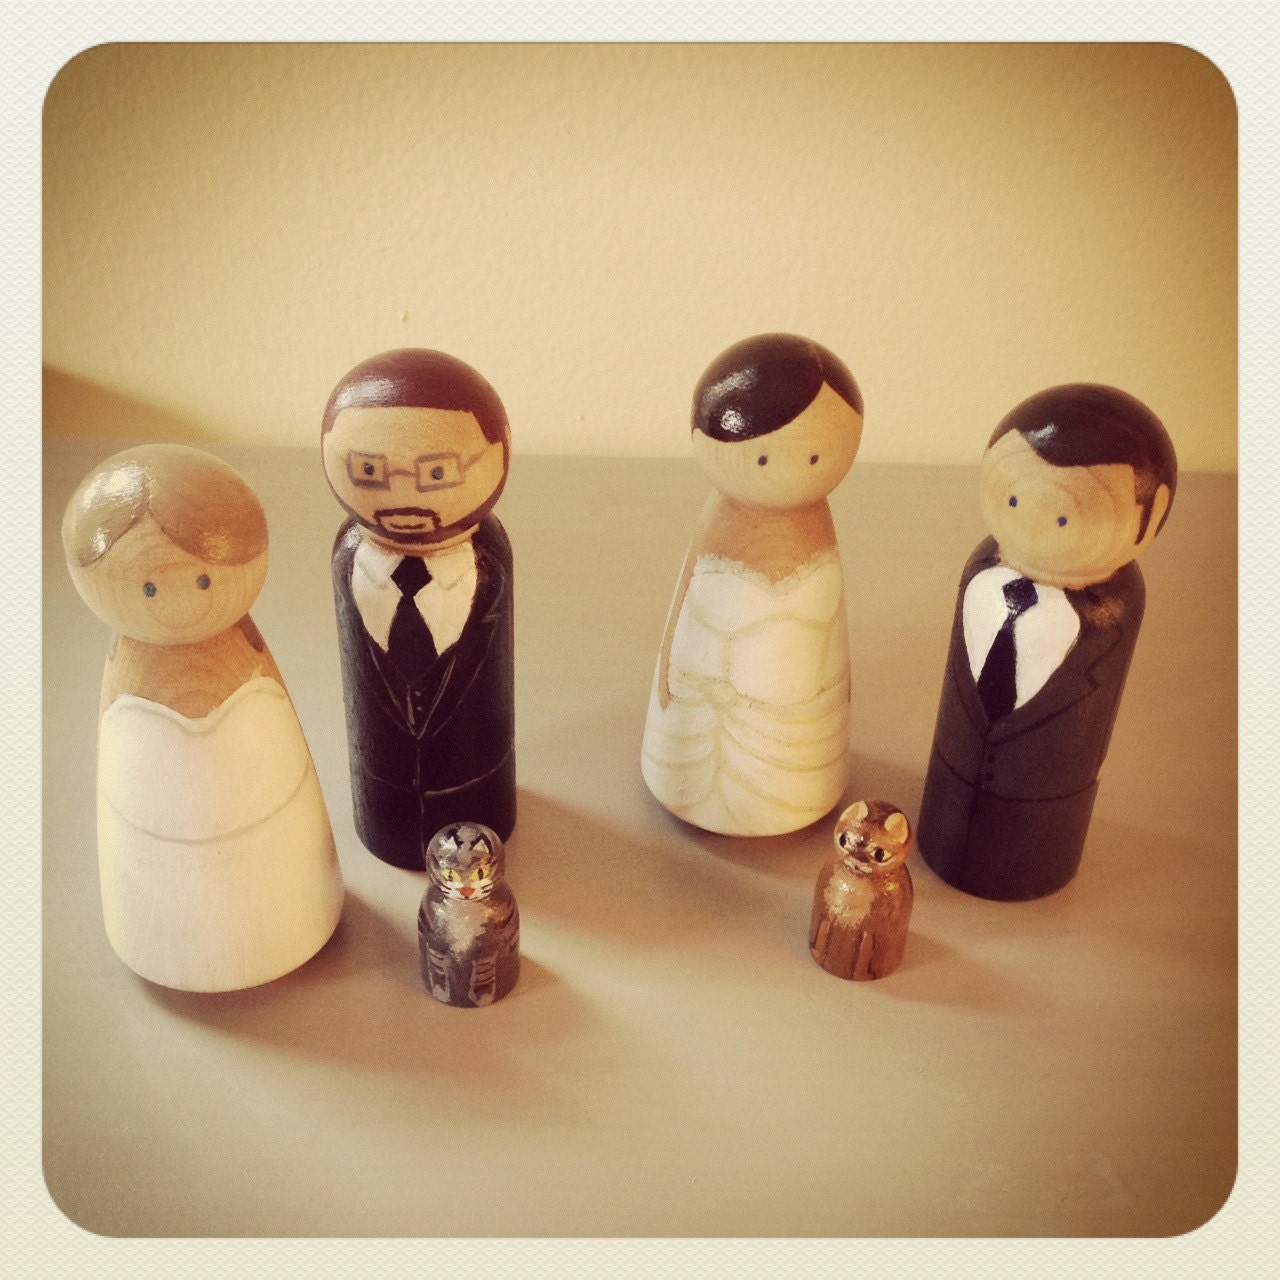 wedding cake toppers wooden dolls custom wedding cake topper wooden peg doll wooden dolls 26642